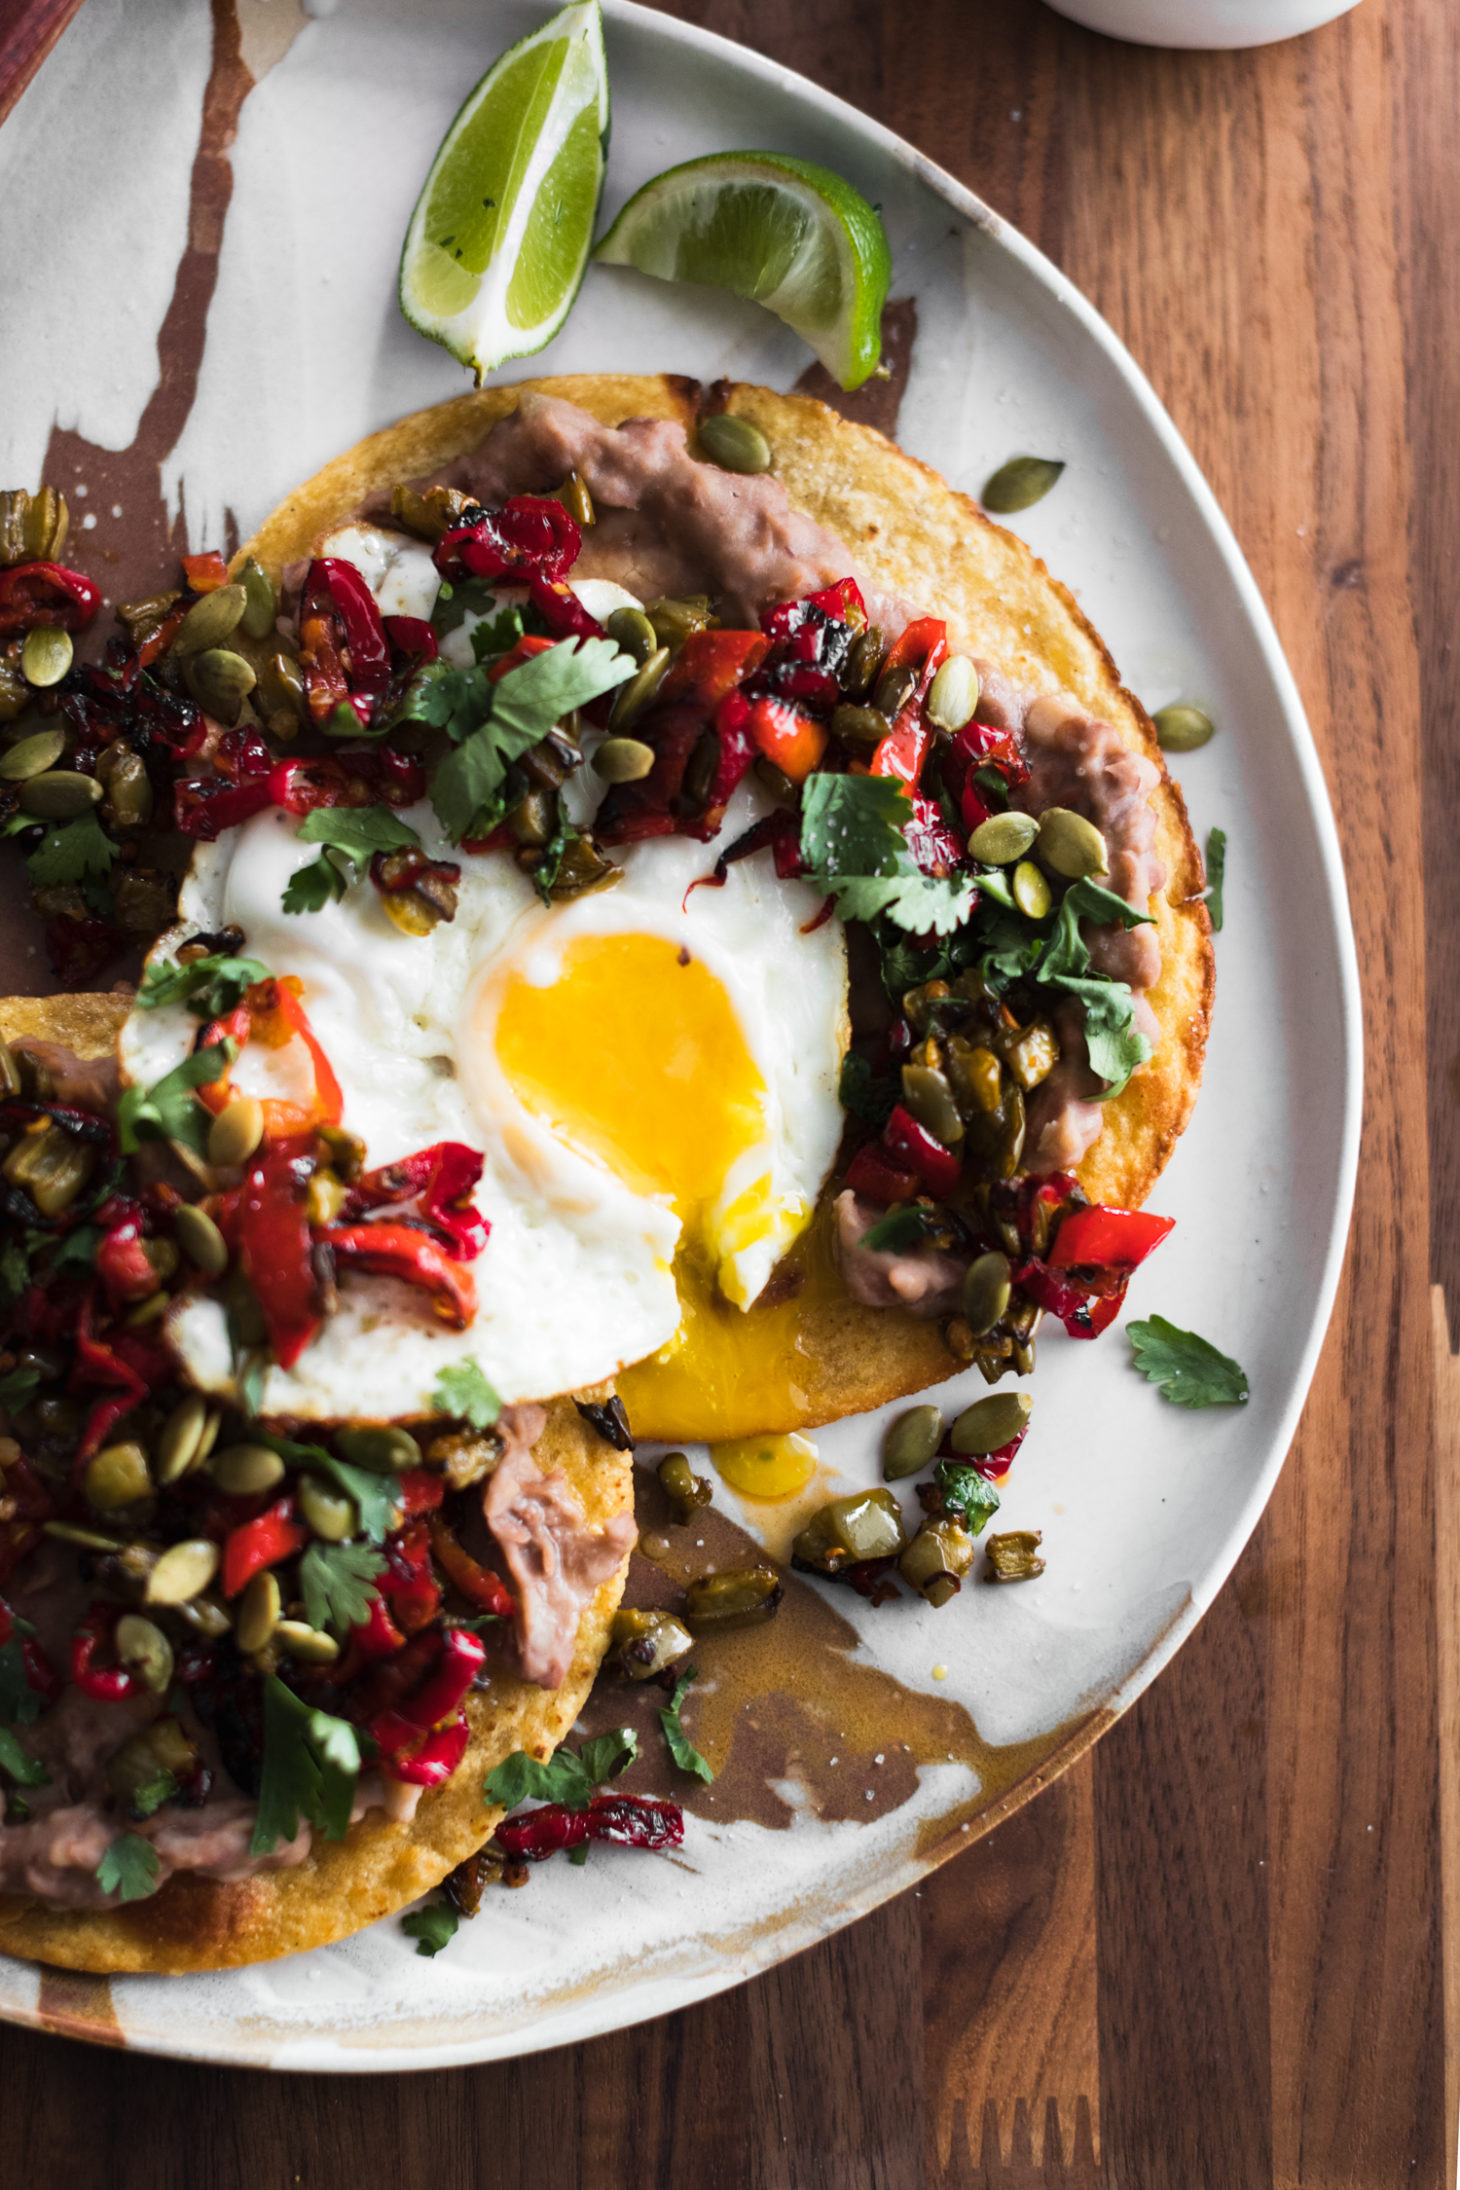 Pinto Bean Tostadas with Nopales and Eggs